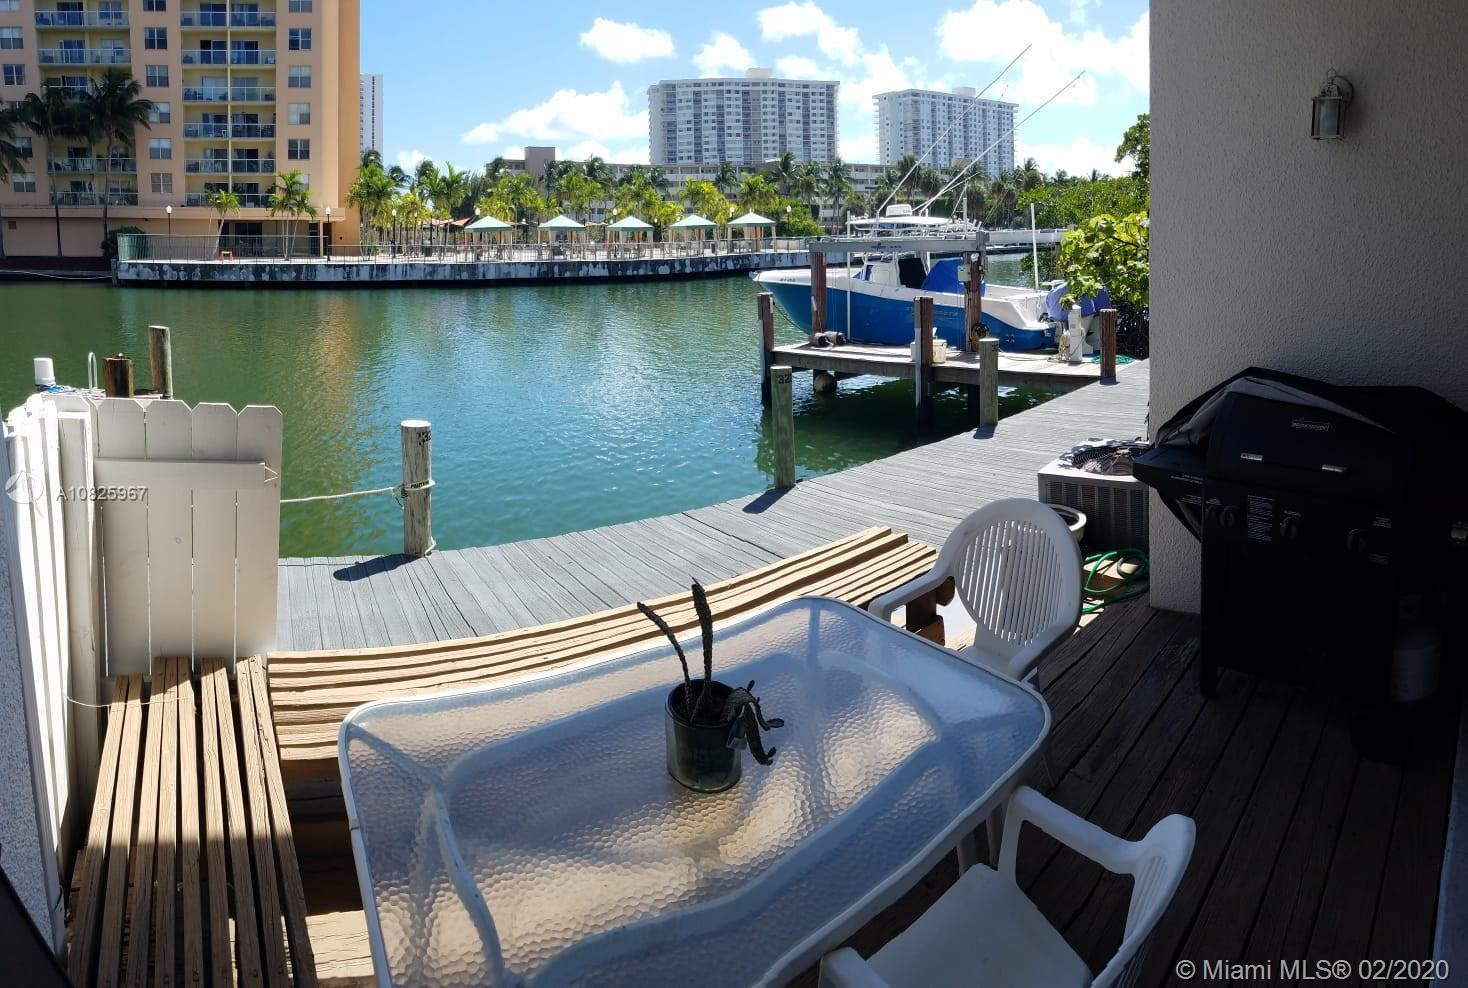 Exclusive private island in Sunny Isles Beach. Boat Owners!!! dock your boat (30+Ft)in DEEDED DOCK